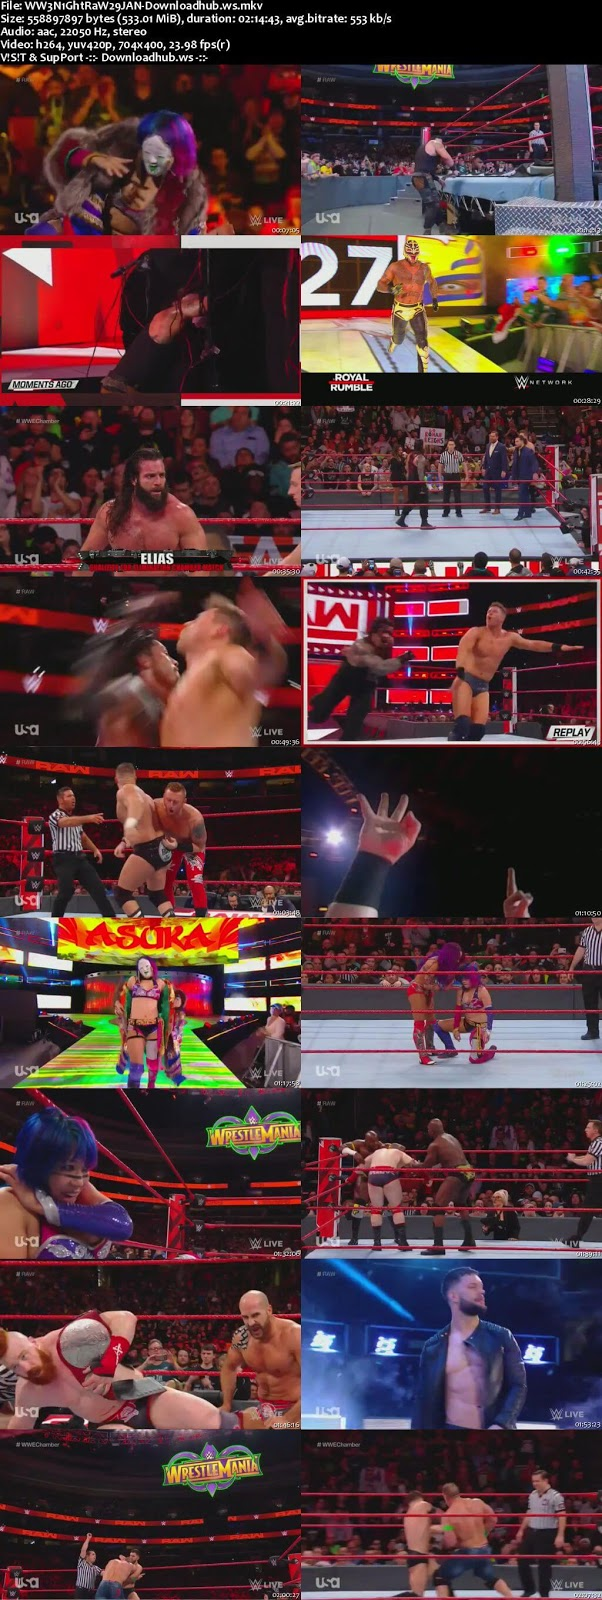 WWE Monday Night Raw 29 January 2018 480p HDTV